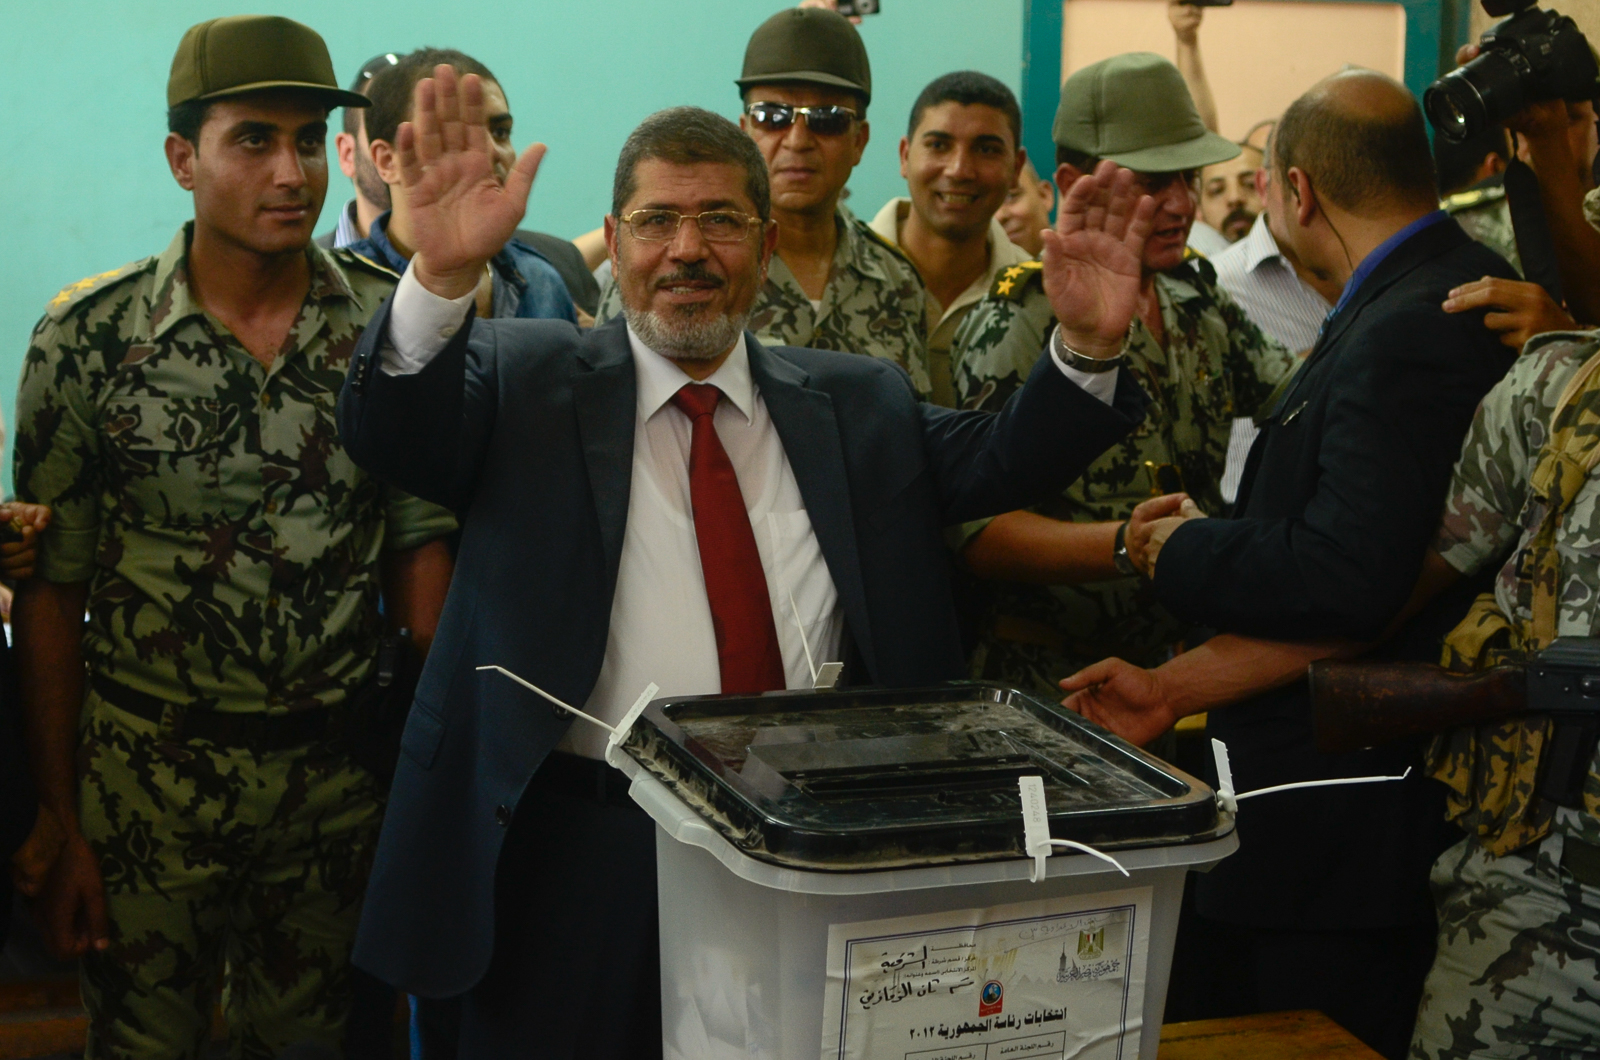 Egypt: Morsi Dies While Making Court Appearance in Egypt